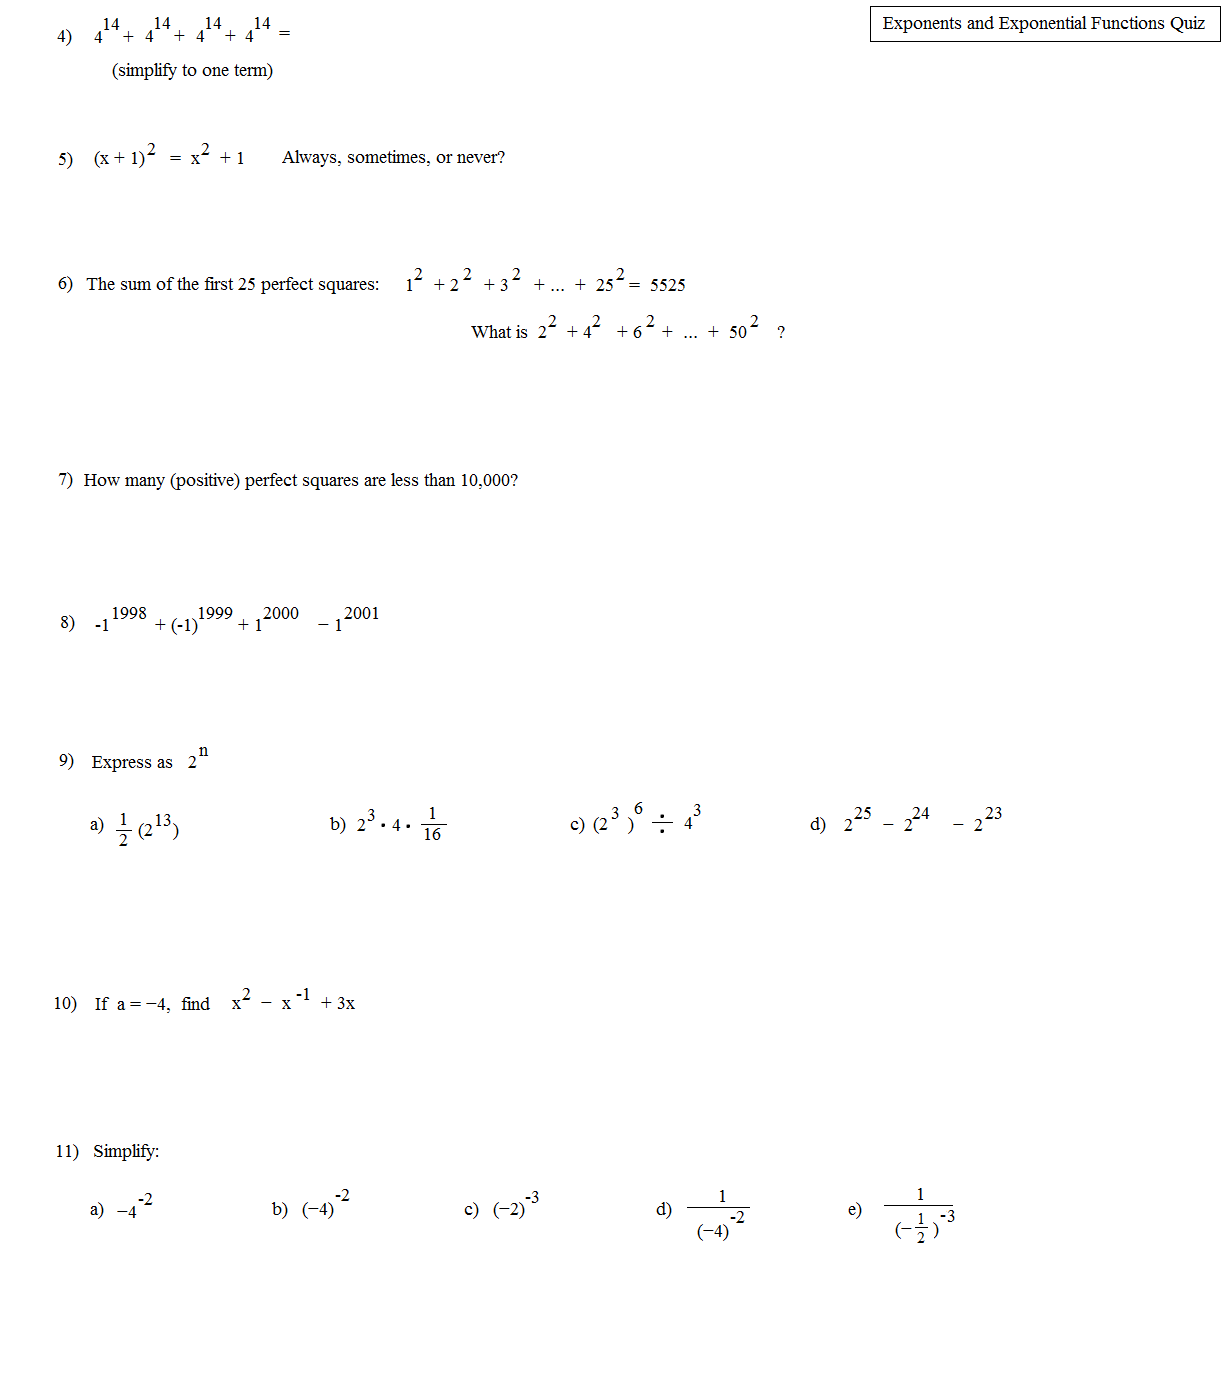 worksheet Exponents And Exponential Functions Worksheets math plane exponents and exponential equations functions quiz e